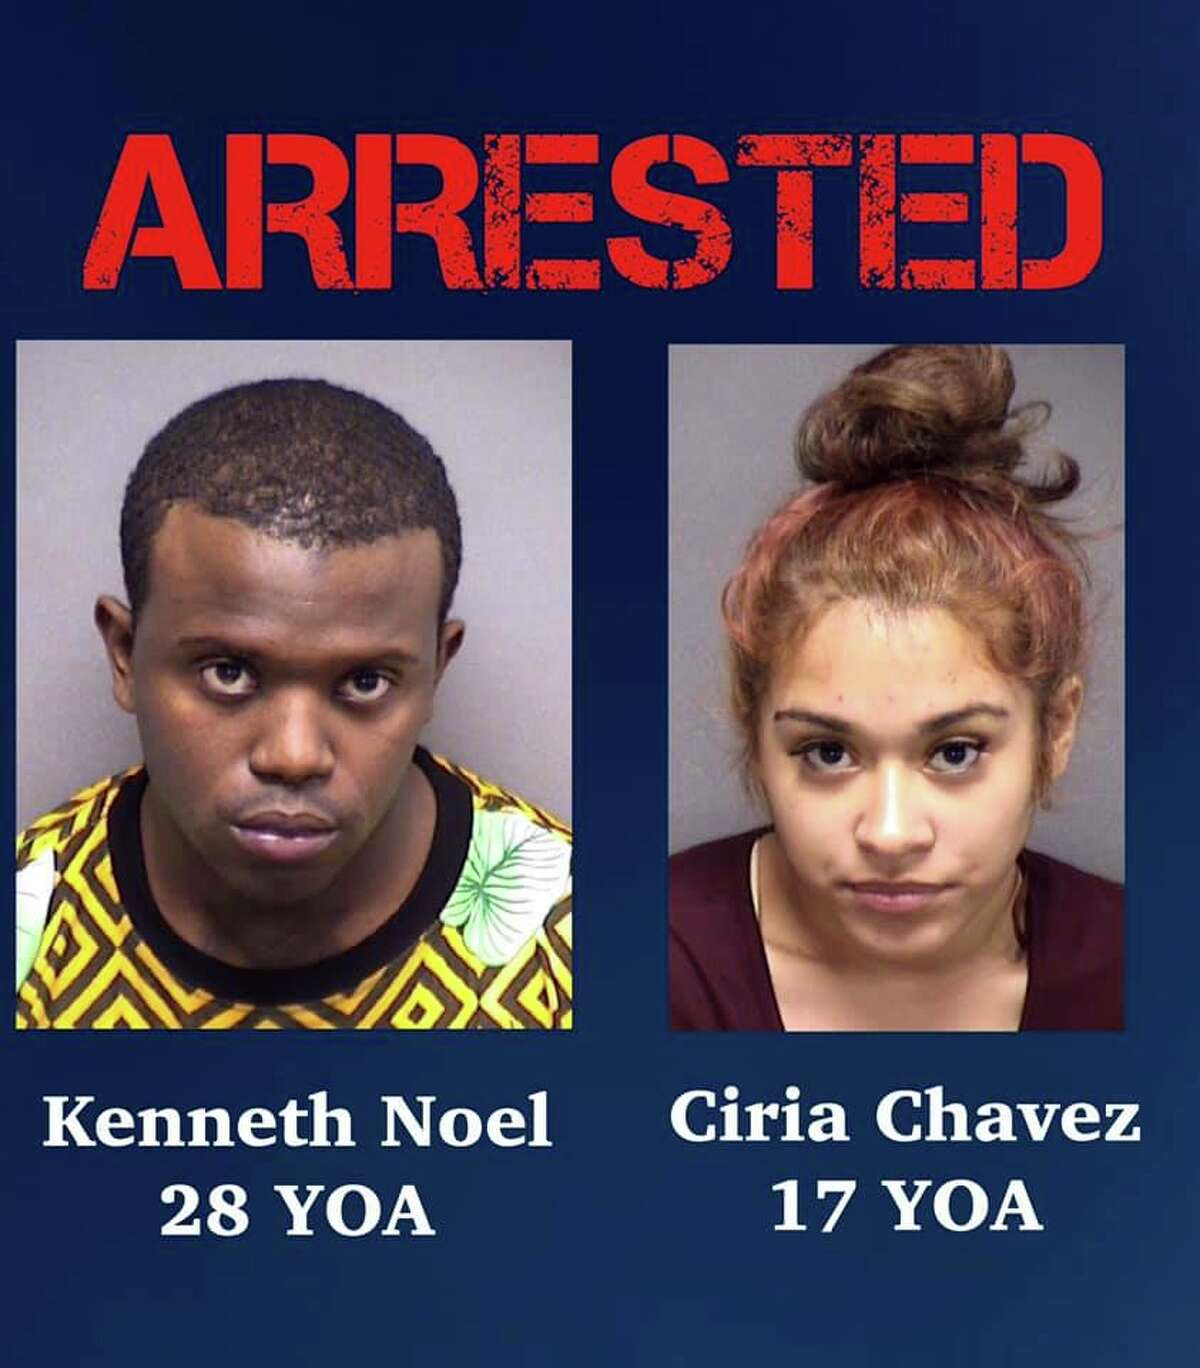 Kenneth Noel and Ciria Chavez are now faces charges of aggravated promotion of prostitution. They were booked into the Bexar County Jail on $75,000 bail.